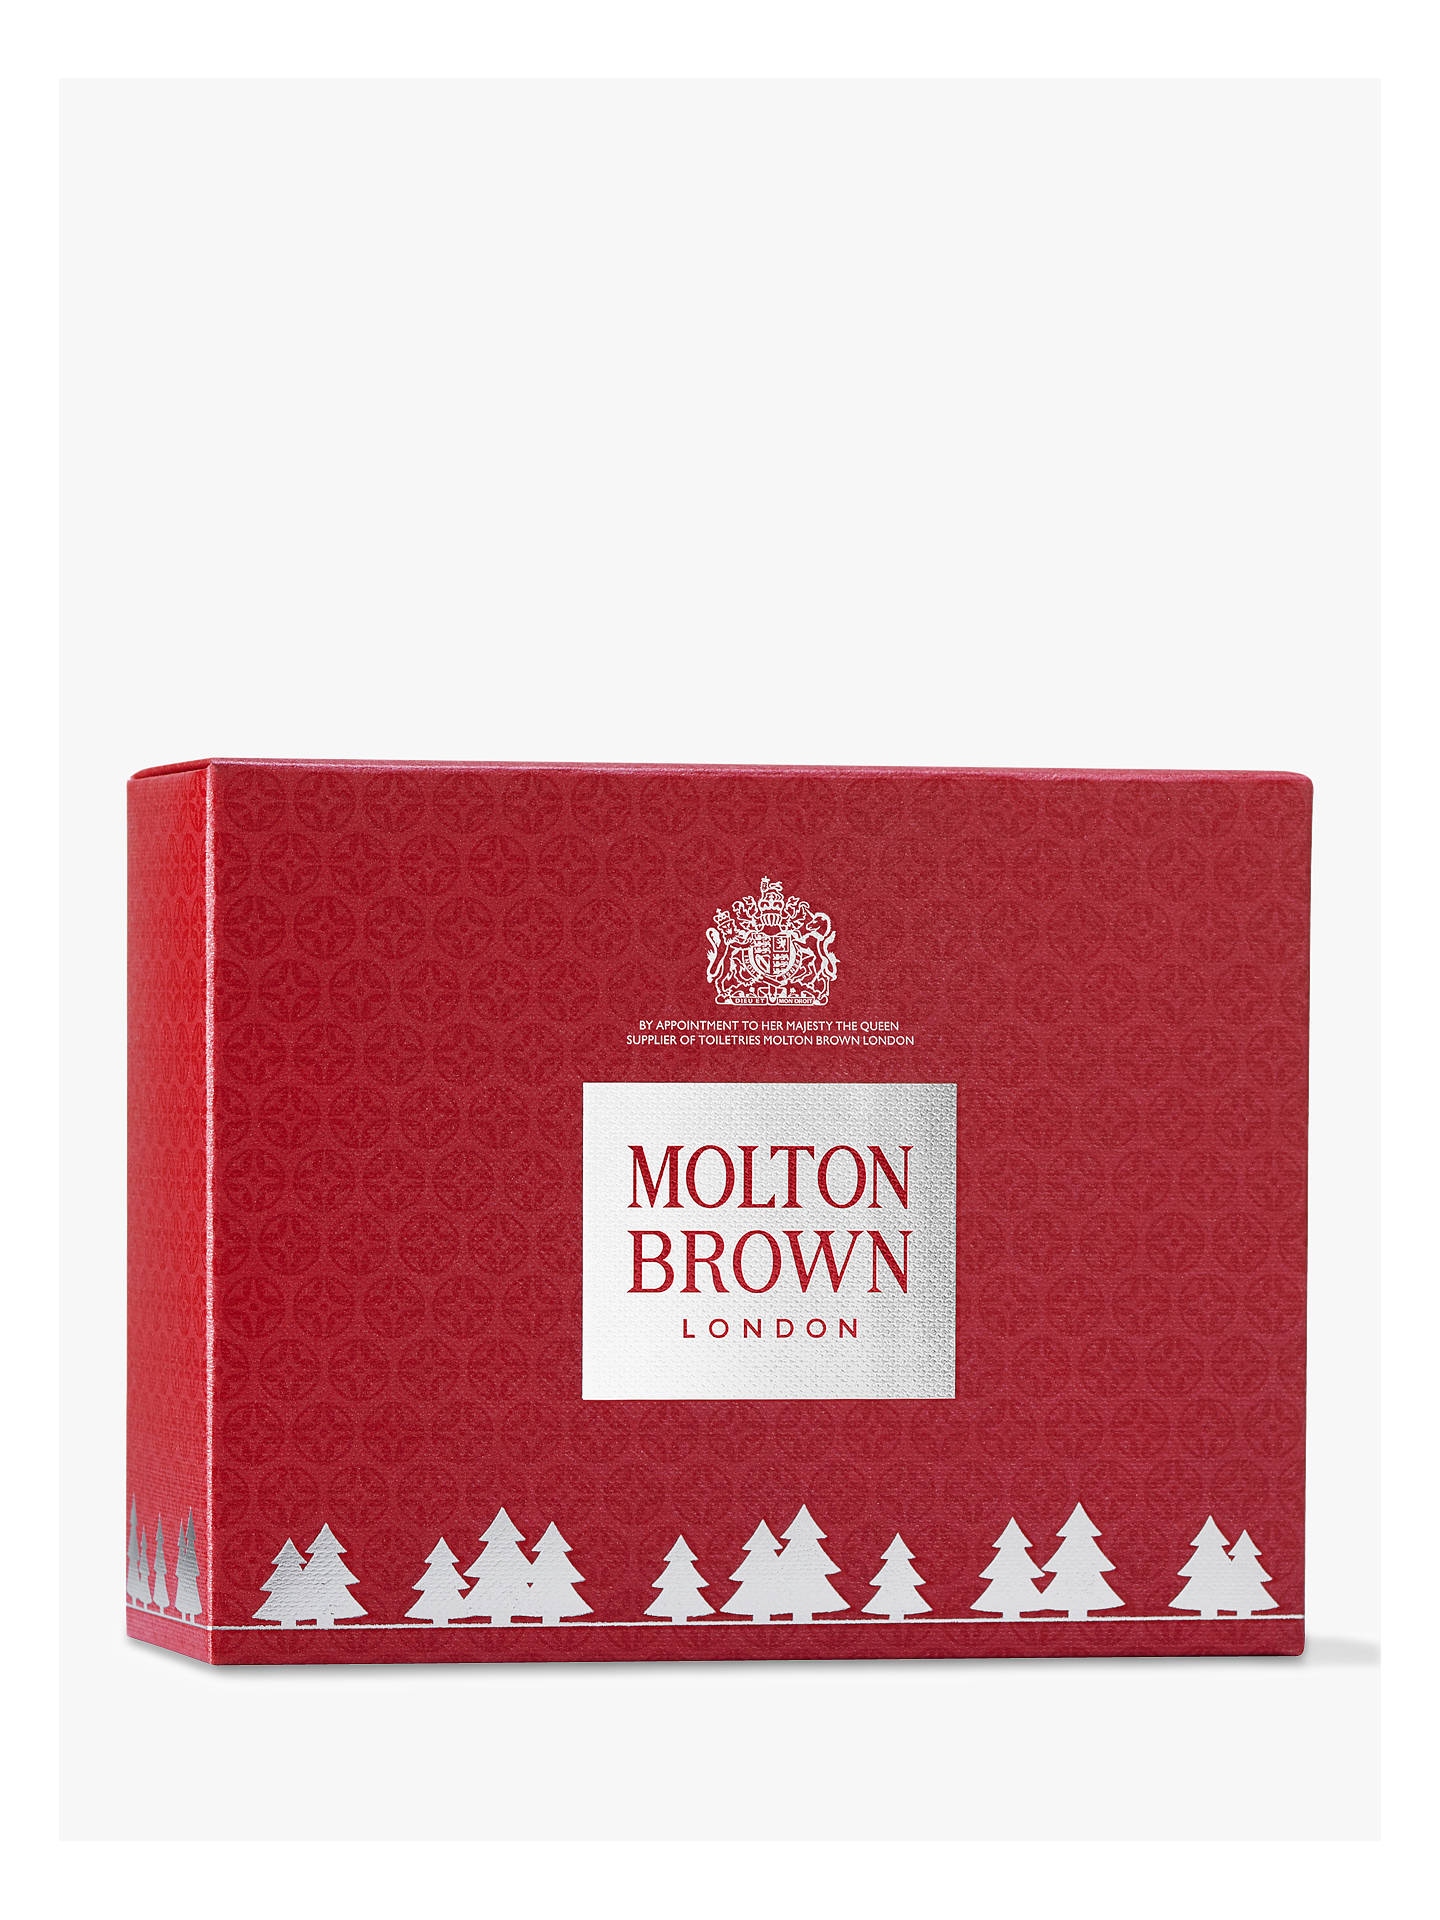 Buy Molton Brown Seductive Rituals Gift Set Online at johnlewis.com